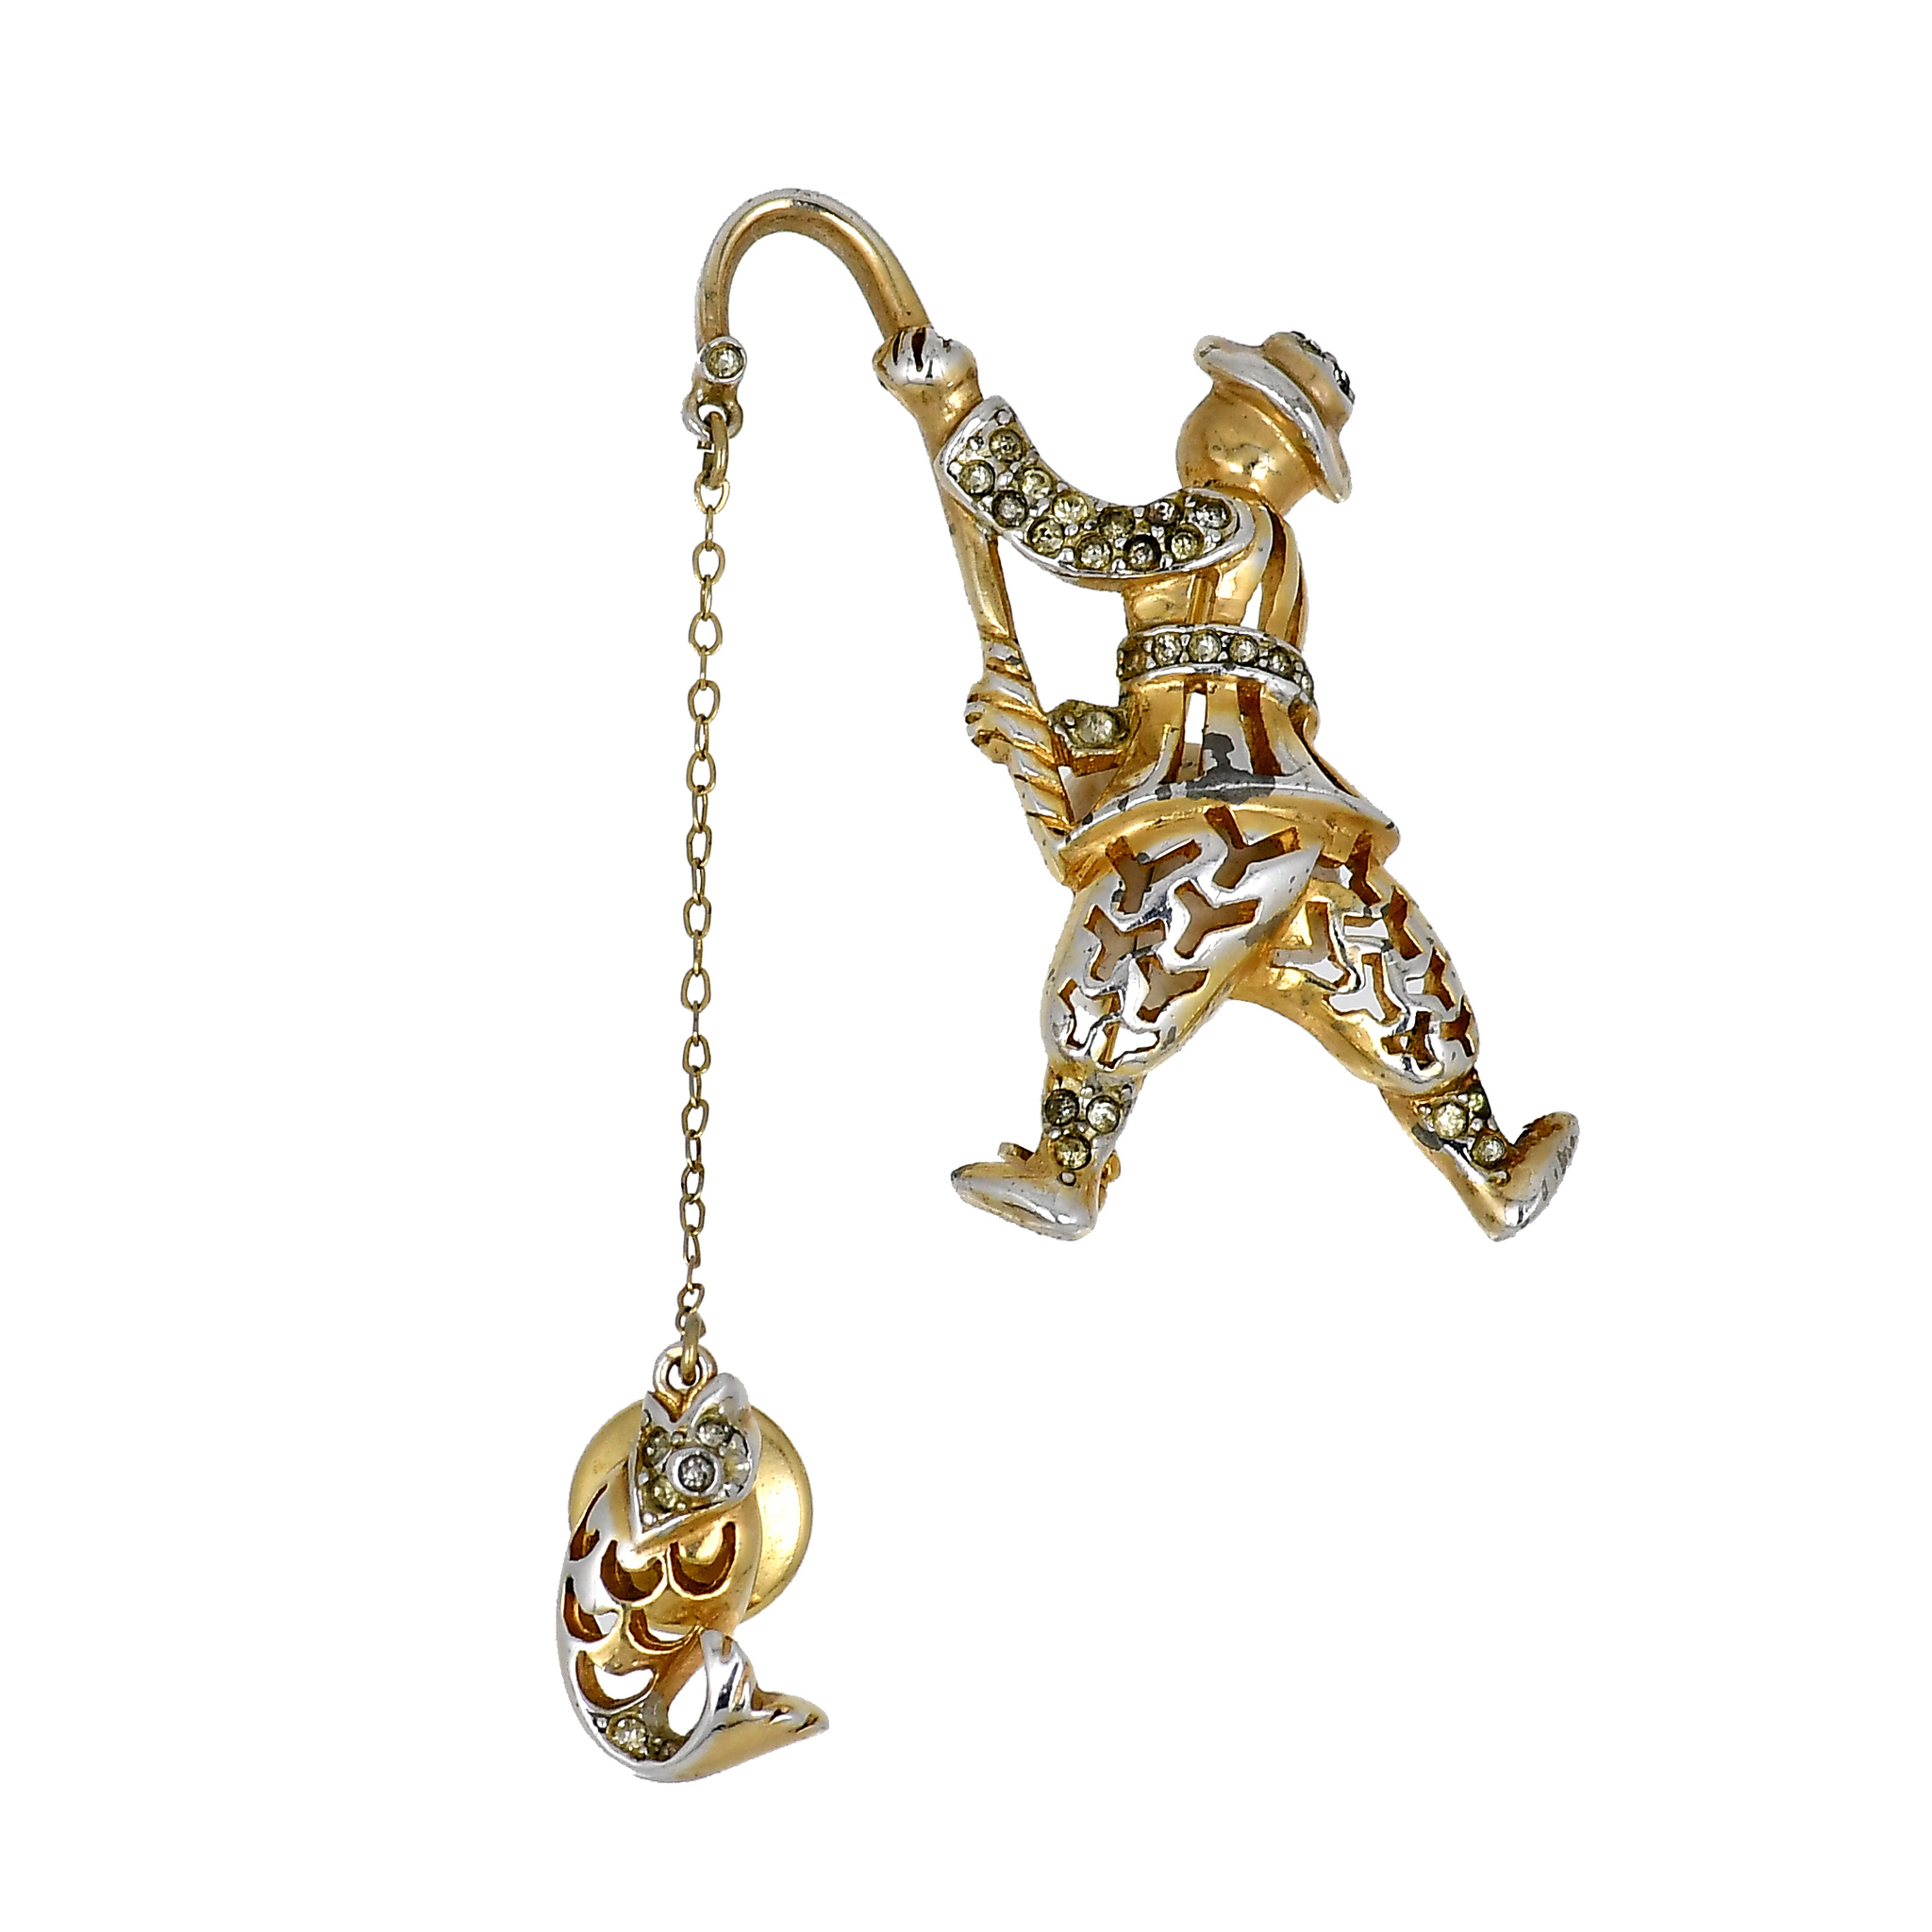 Reja sterling gold-plated chatelaine brooch